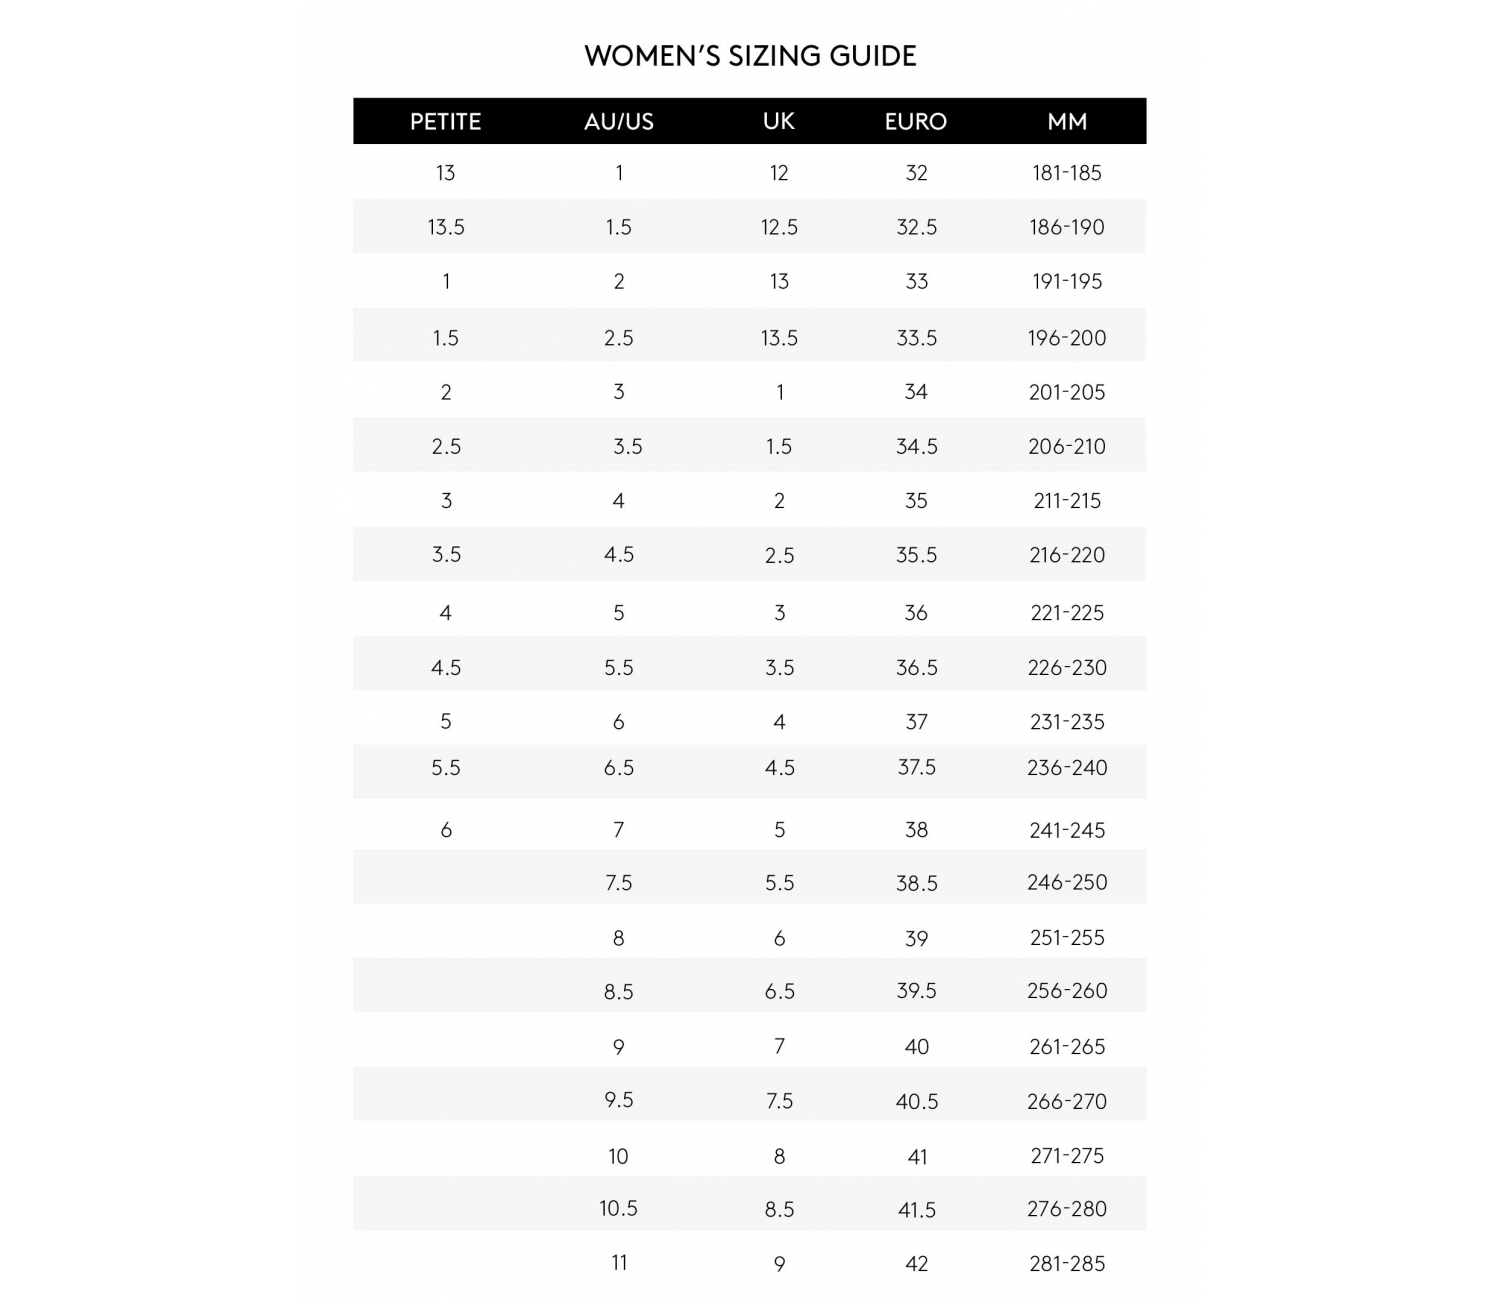 Women's Sizing Guide